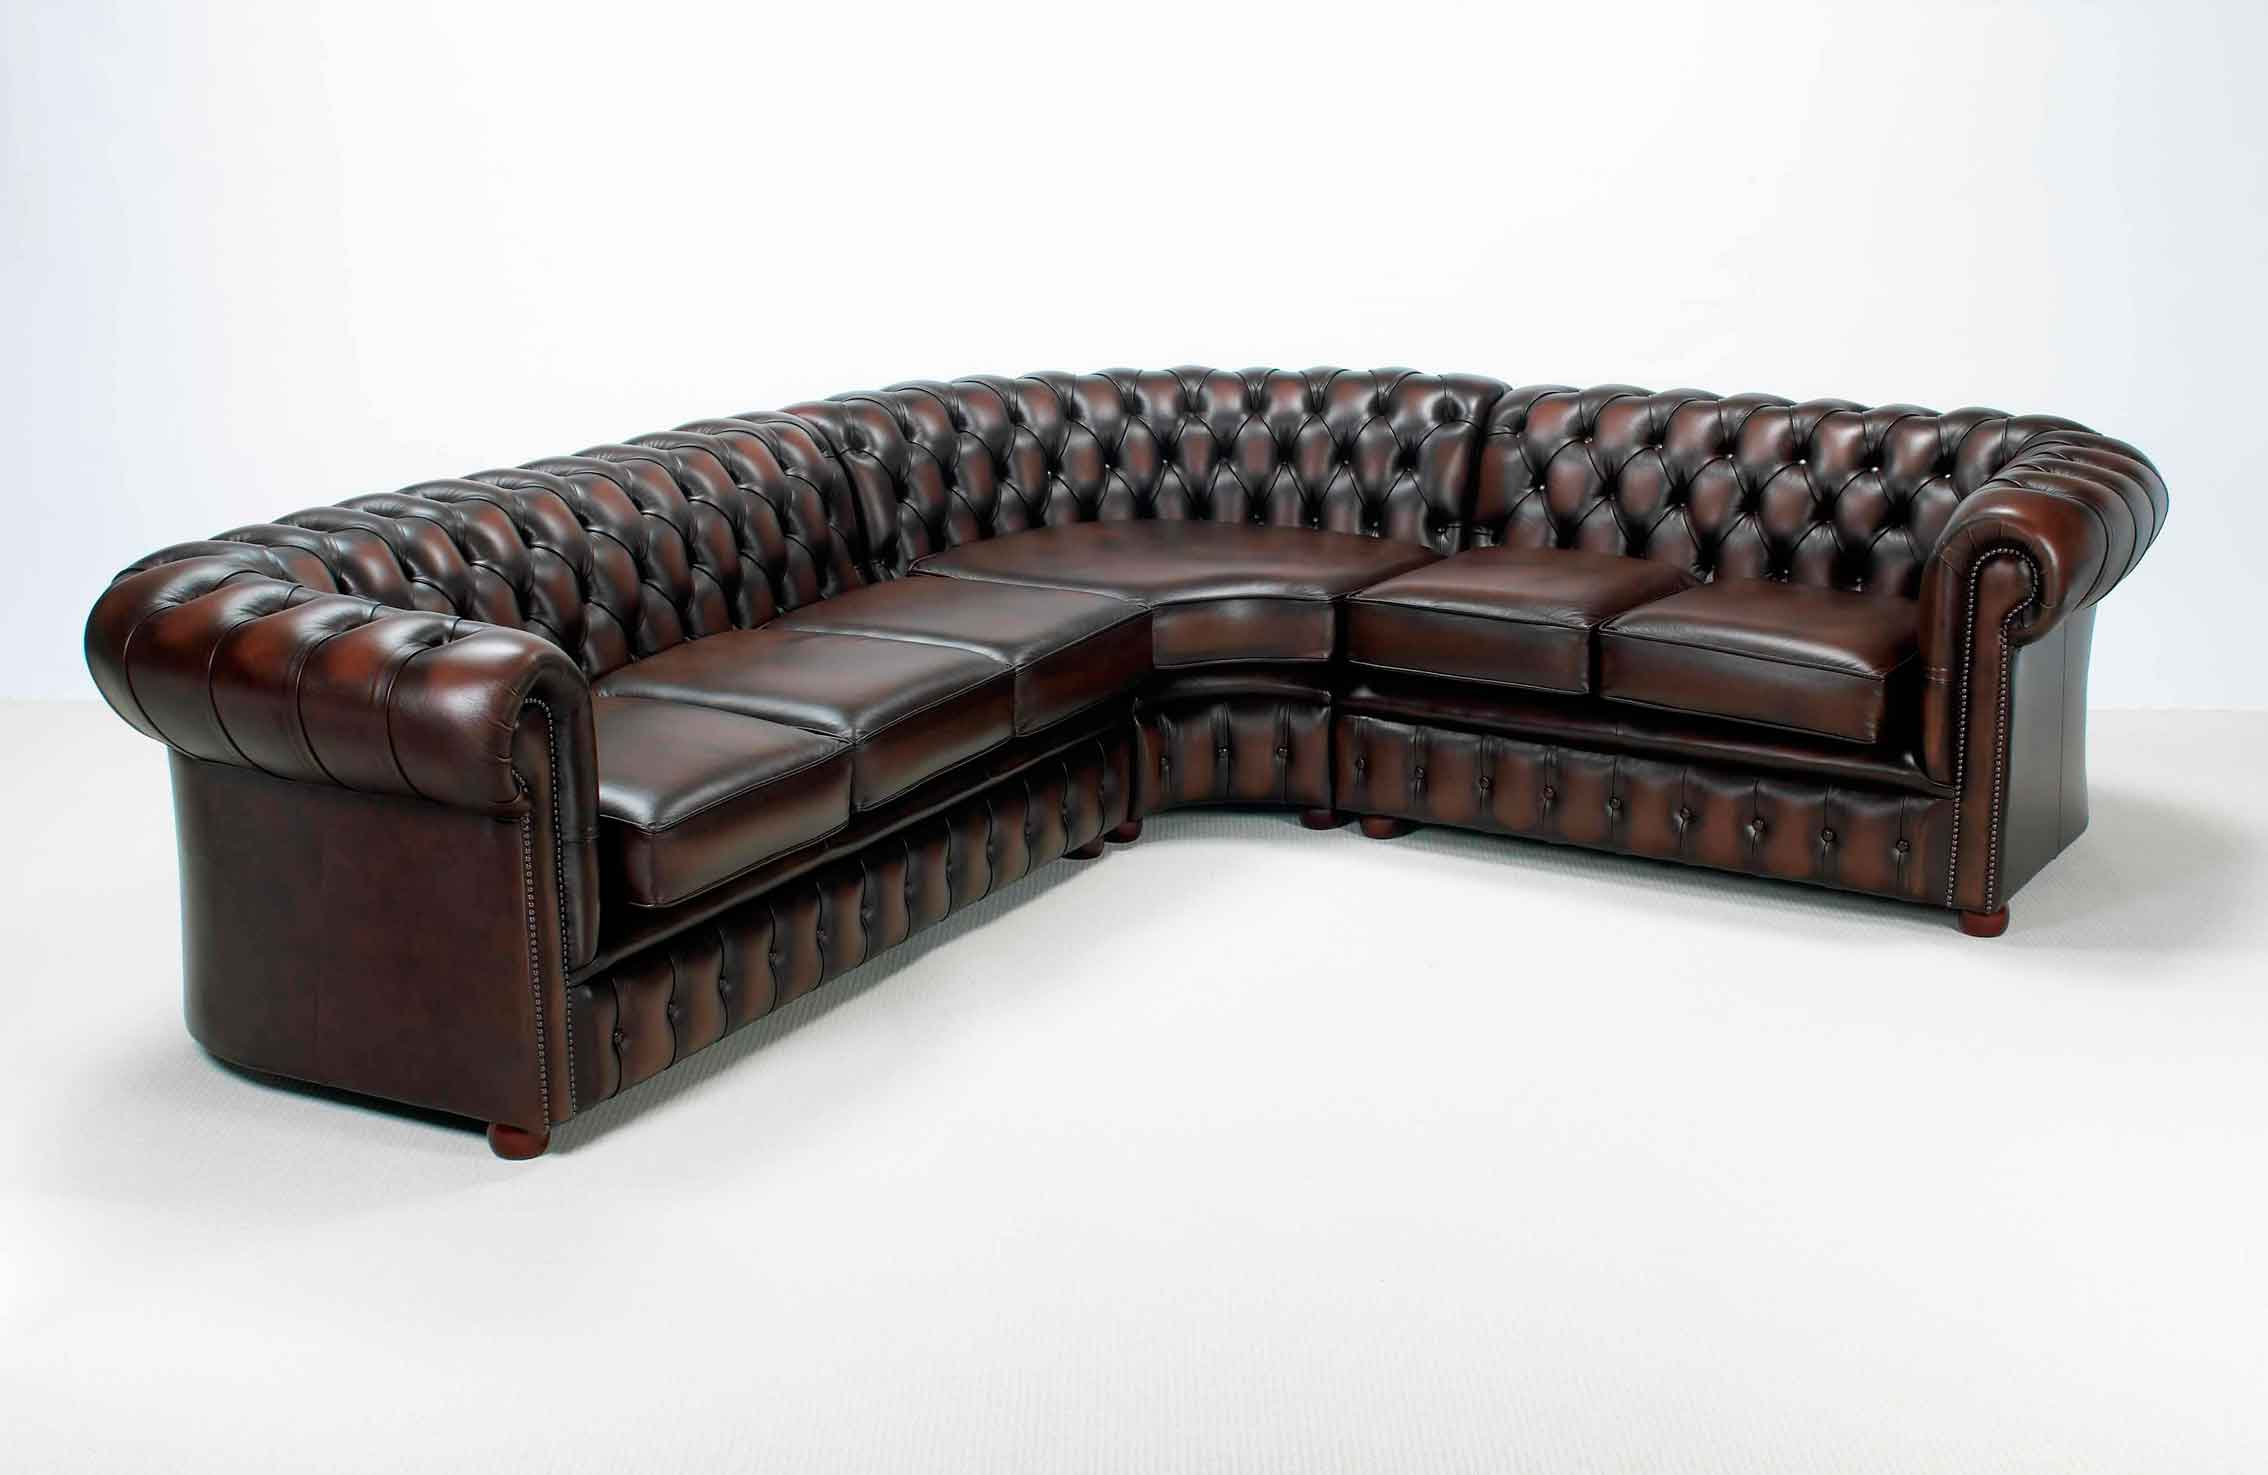 chesterfield ecksofa eckcouch designer sofa couch vintage. Black Bedroom Furniture Sets. Home Design Ideas